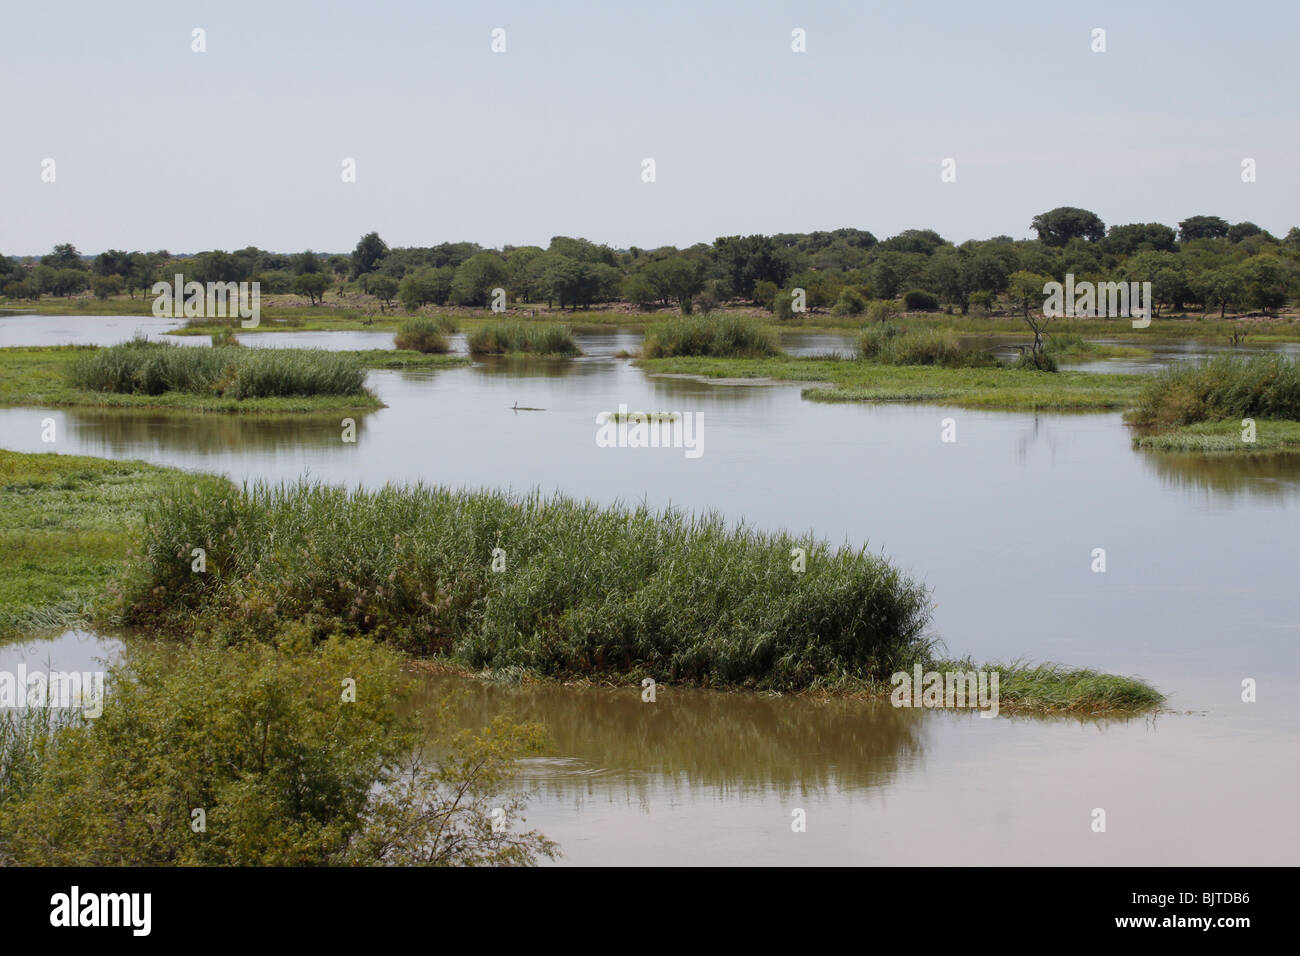 Looking across the cunene river towards Angola. Calueque, Cunene Province, Southern Angola, Africa. - Stock Image